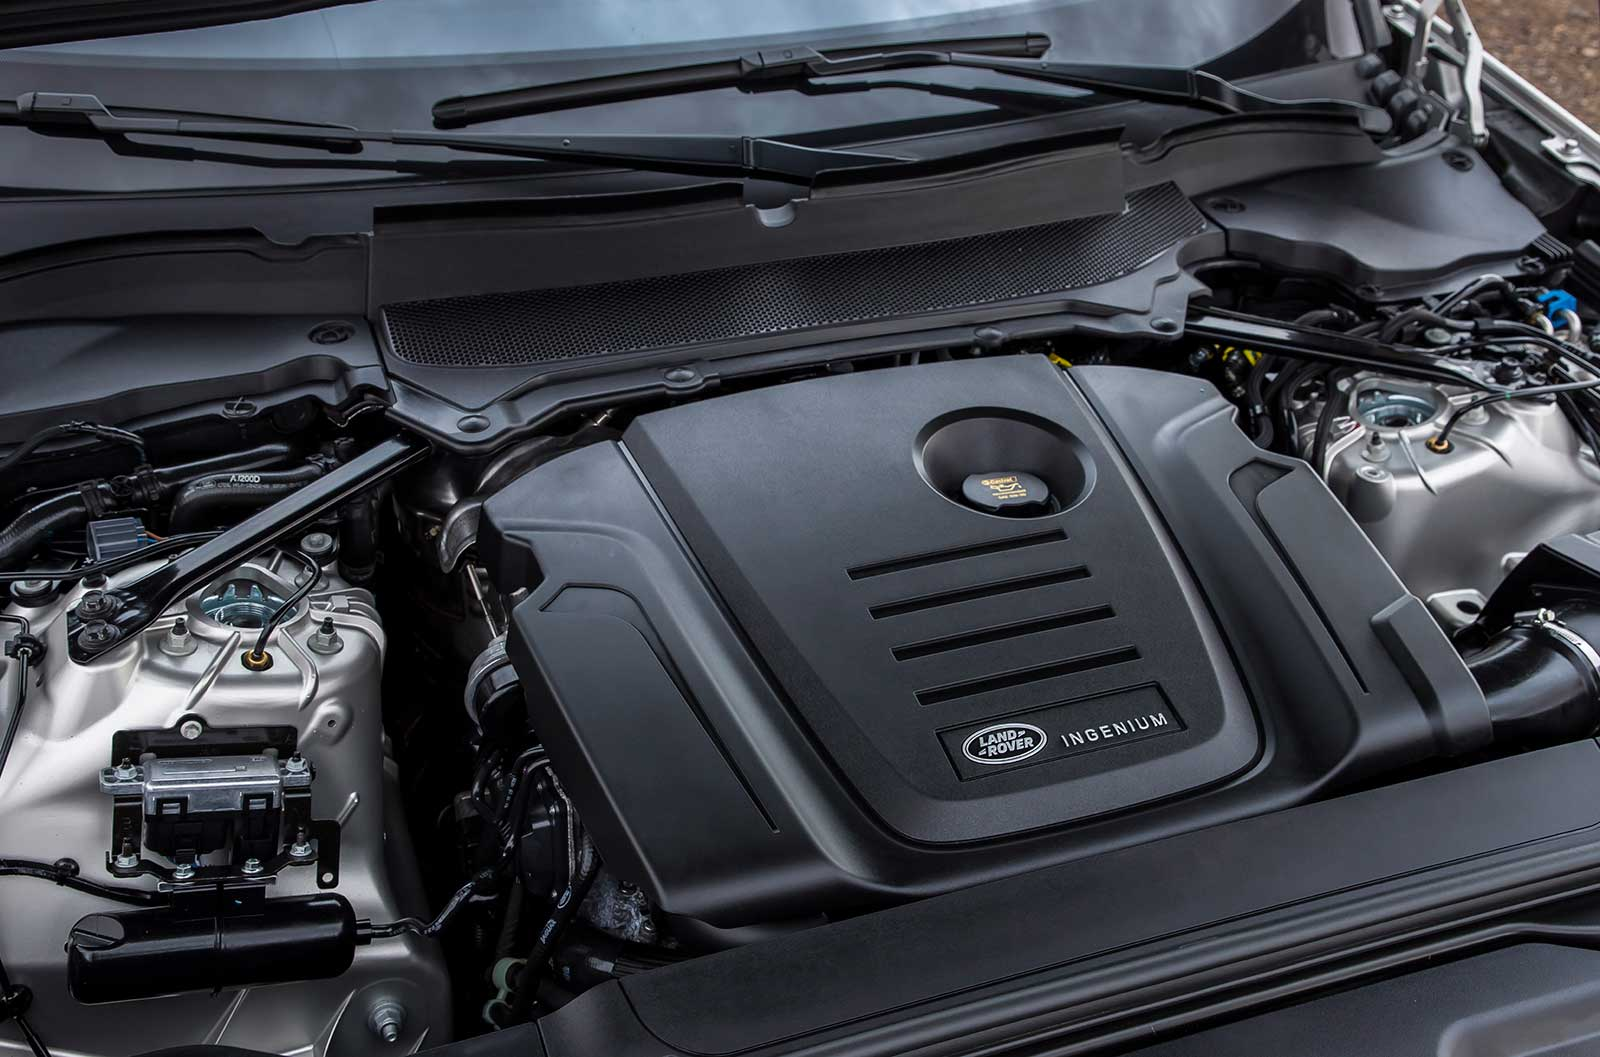 discovery facelift review express land auto rover landrover engine sport diesel